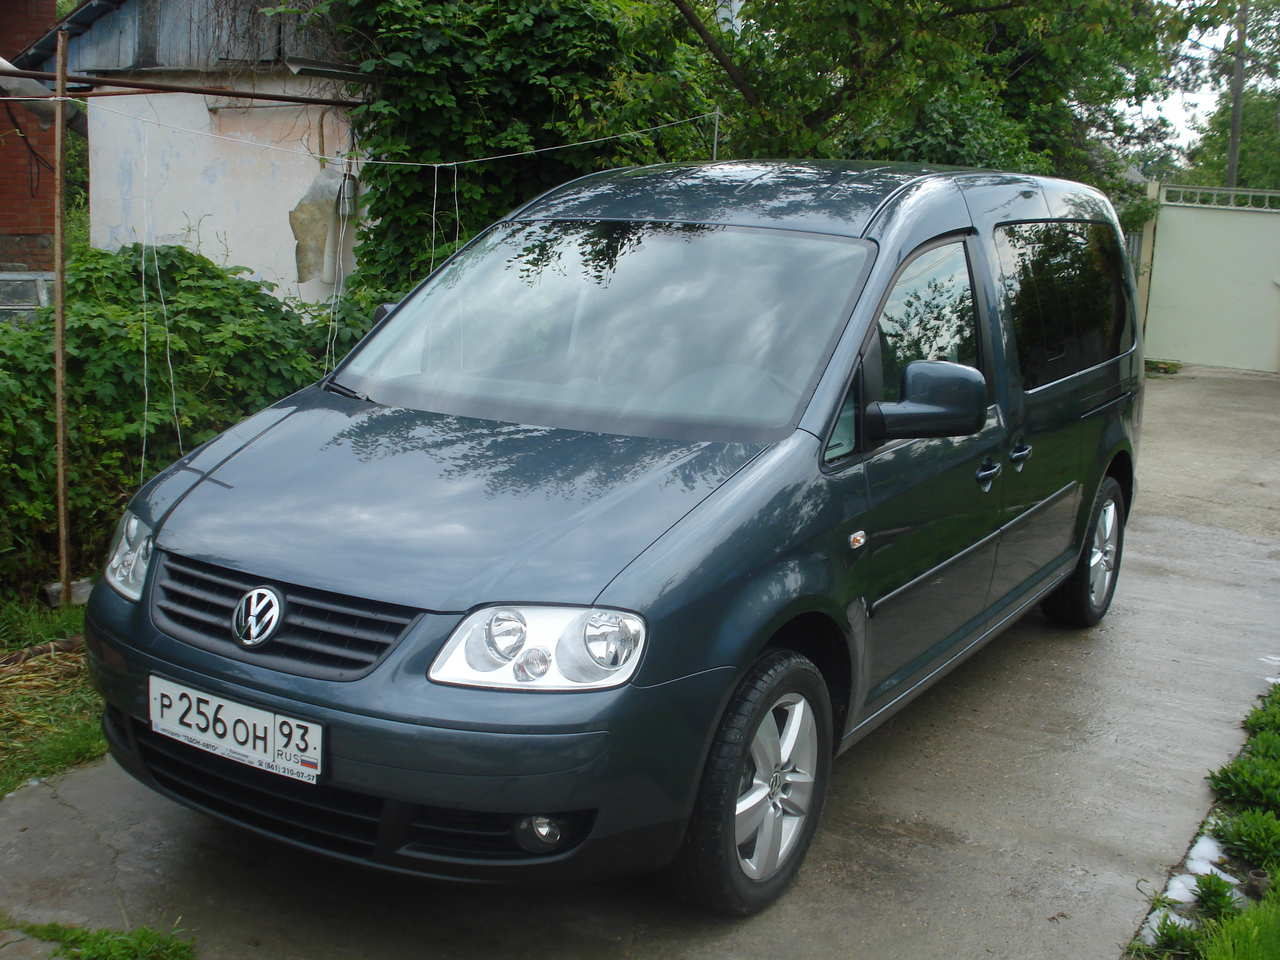 Volkswagen Caddy 2008 photo - 2